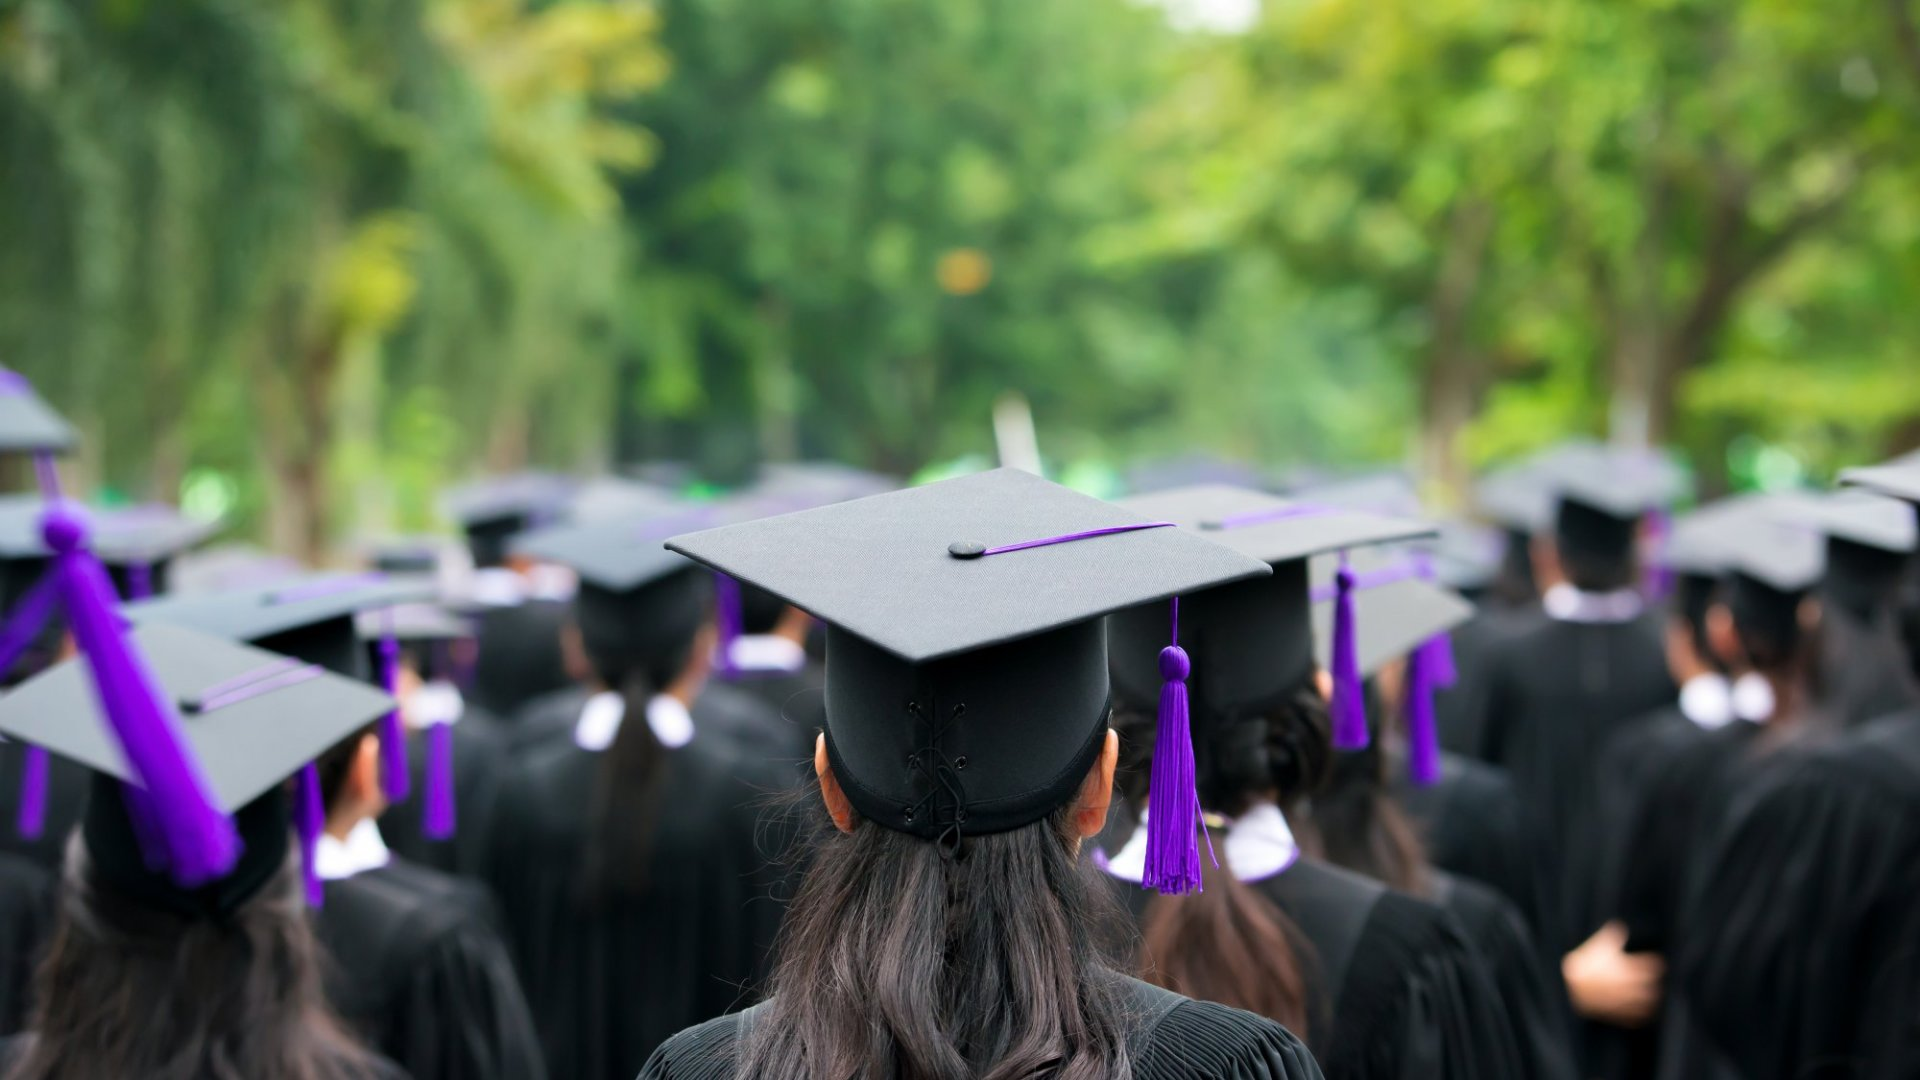 New Graduates, Strategize Your Careers With These 6 Tips